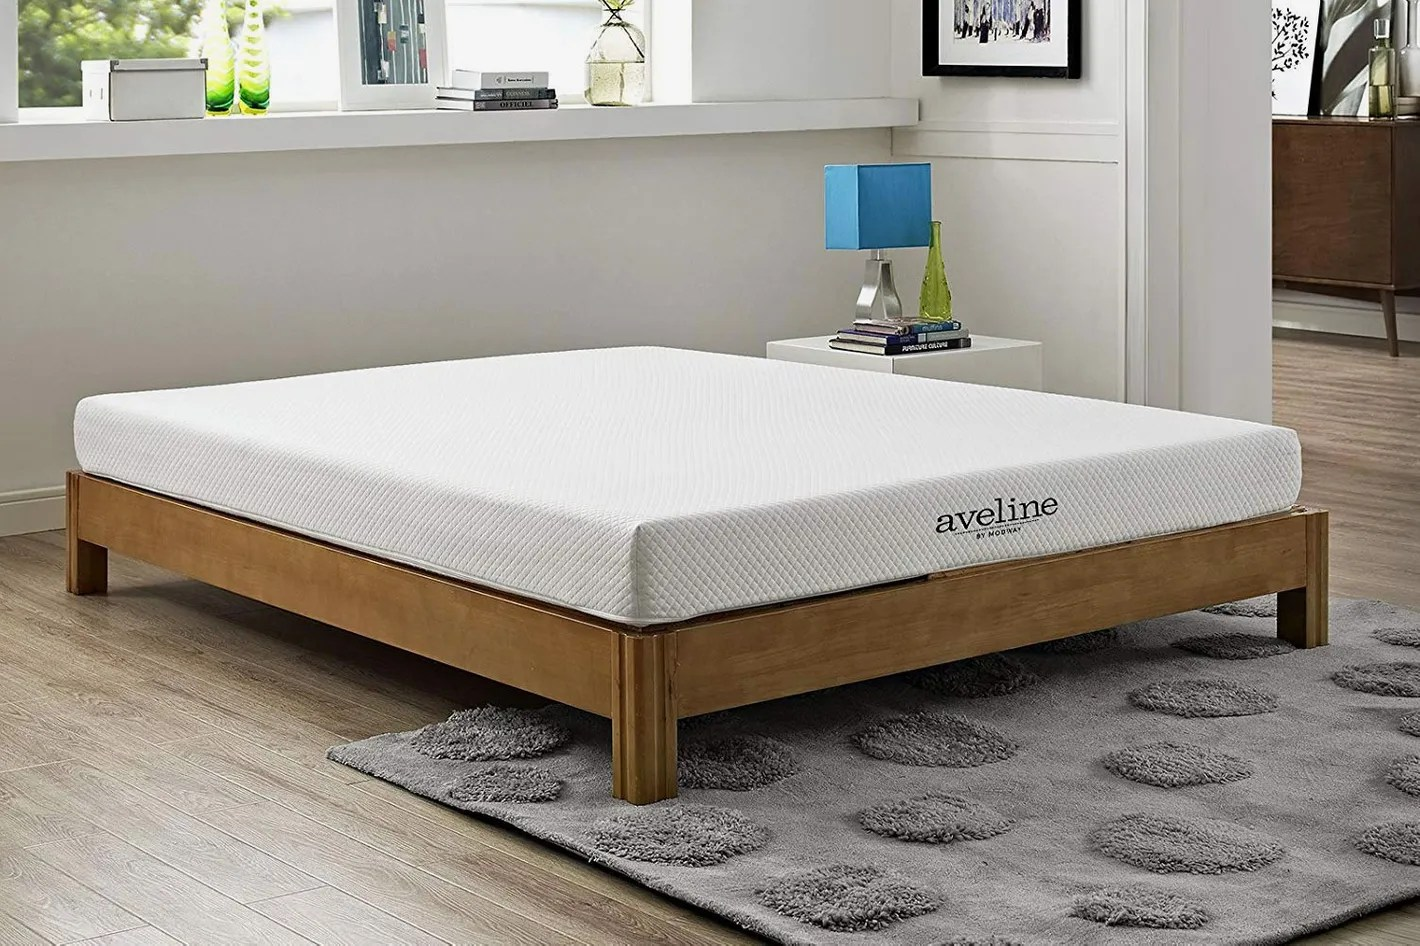 Best Foam Matress Modway Aveline 6 Gel Infused Memory Foam Queen Mattress